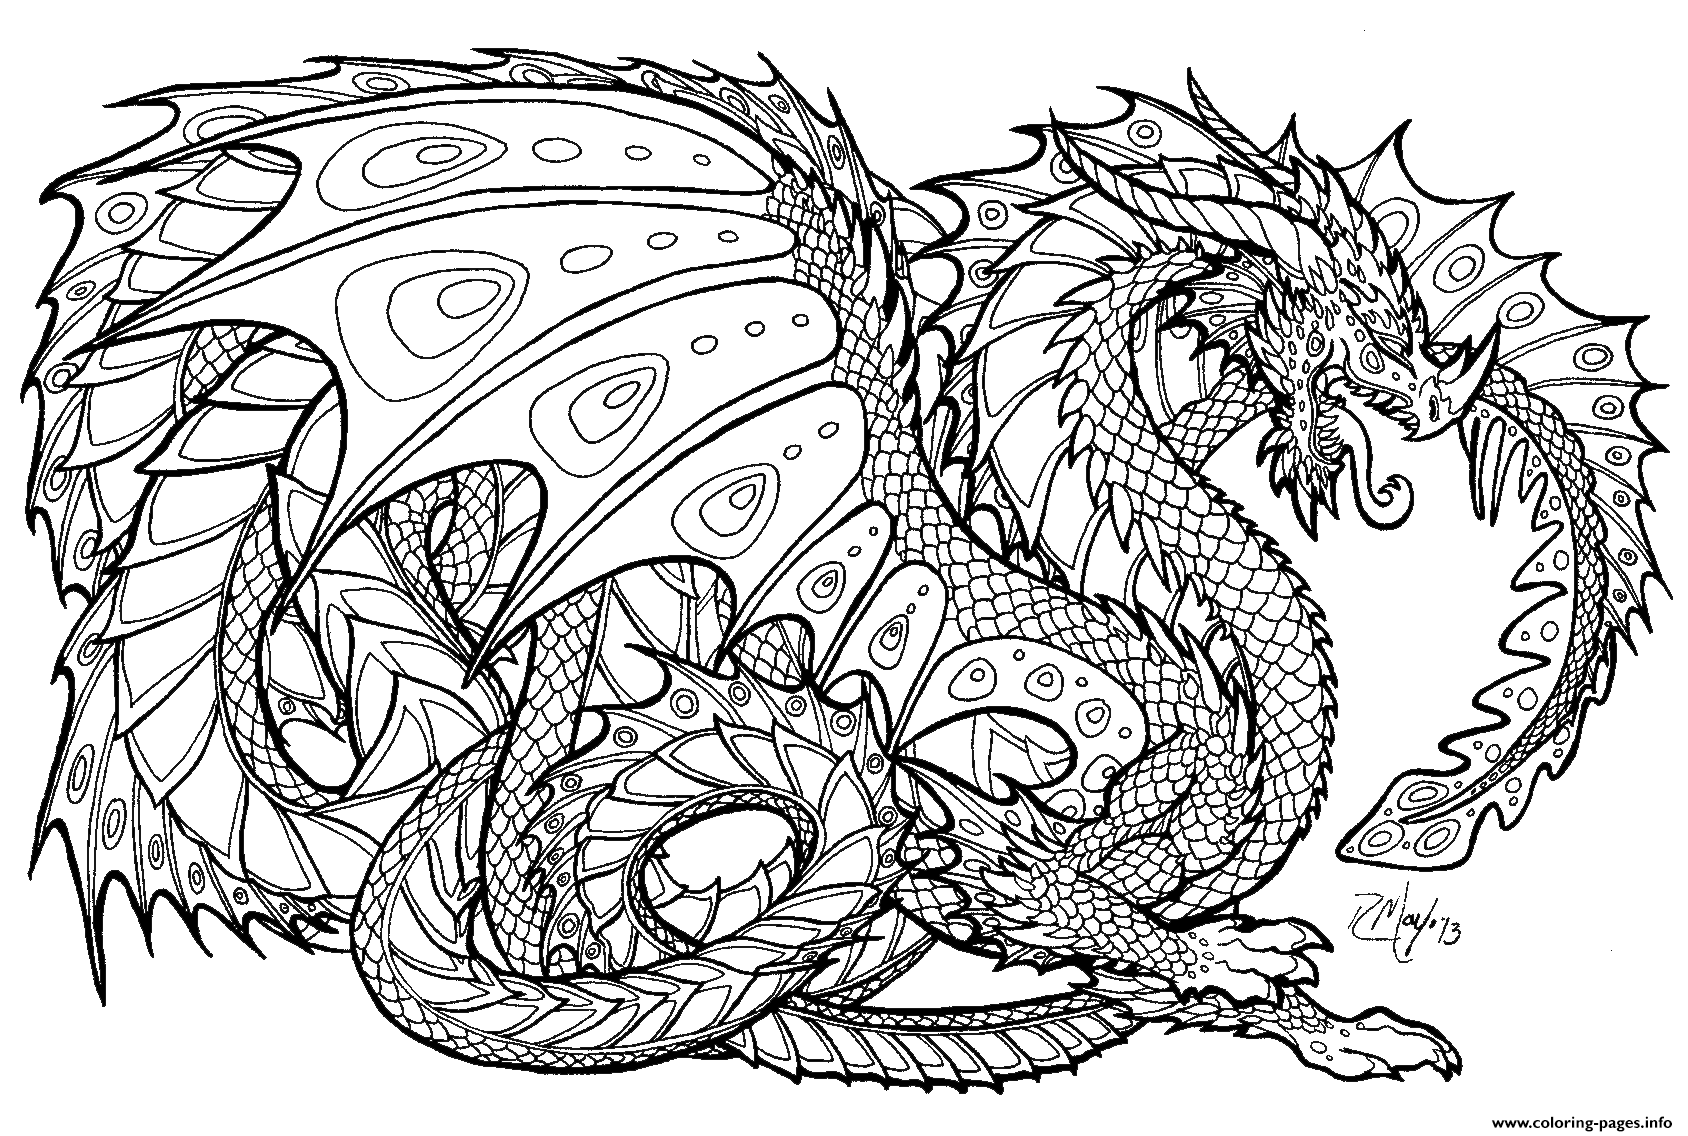 realistic dragon coloring pages realistic dragon coloring pages for adults coloringstar dragon coloring pages realistic